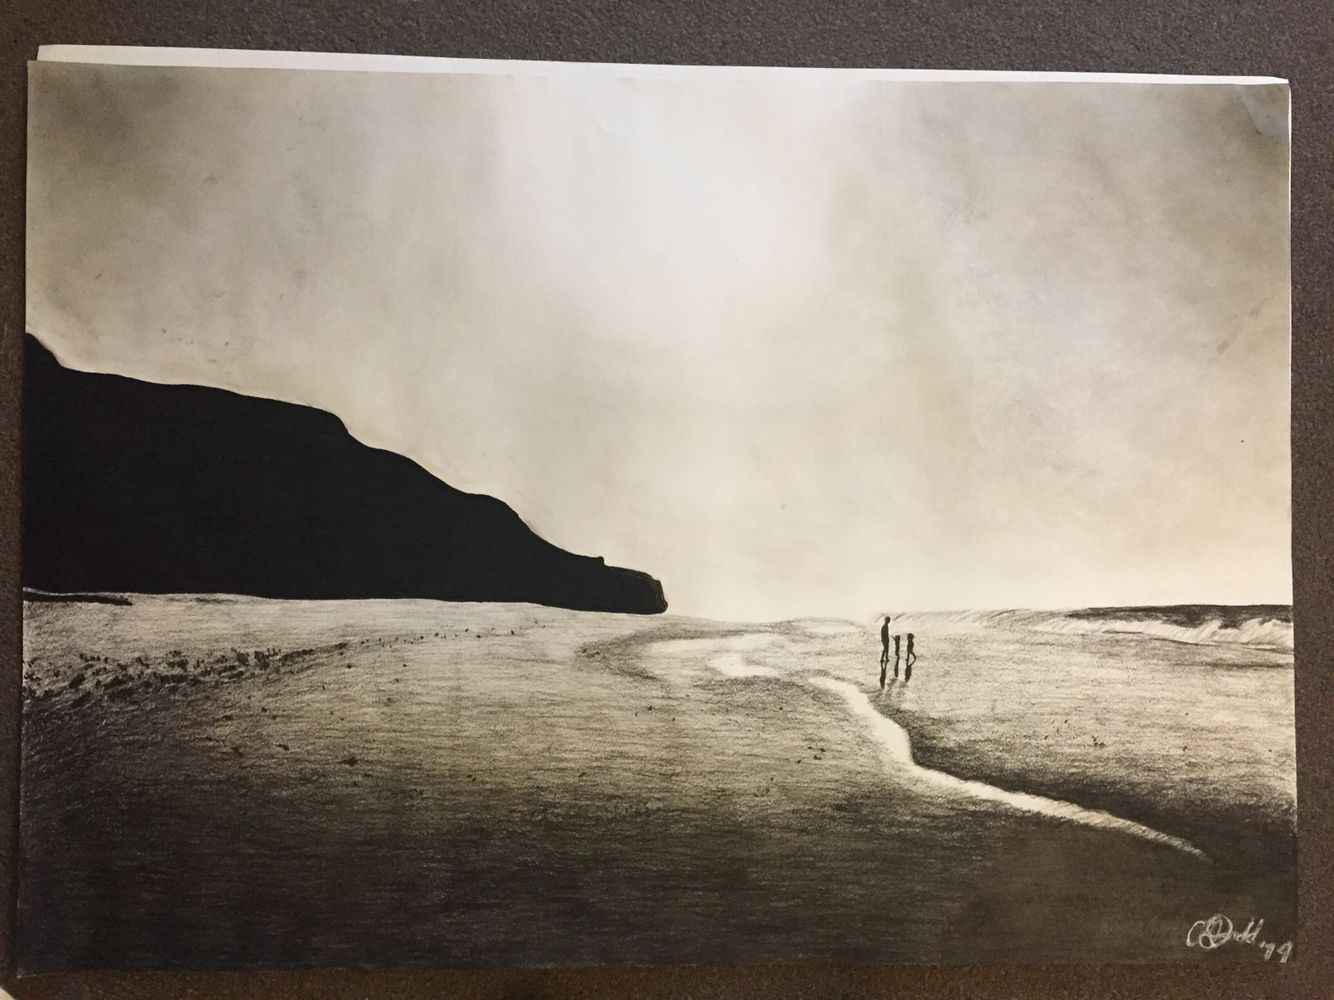 clipart download Drawing charcoal beach. A of portugal scene